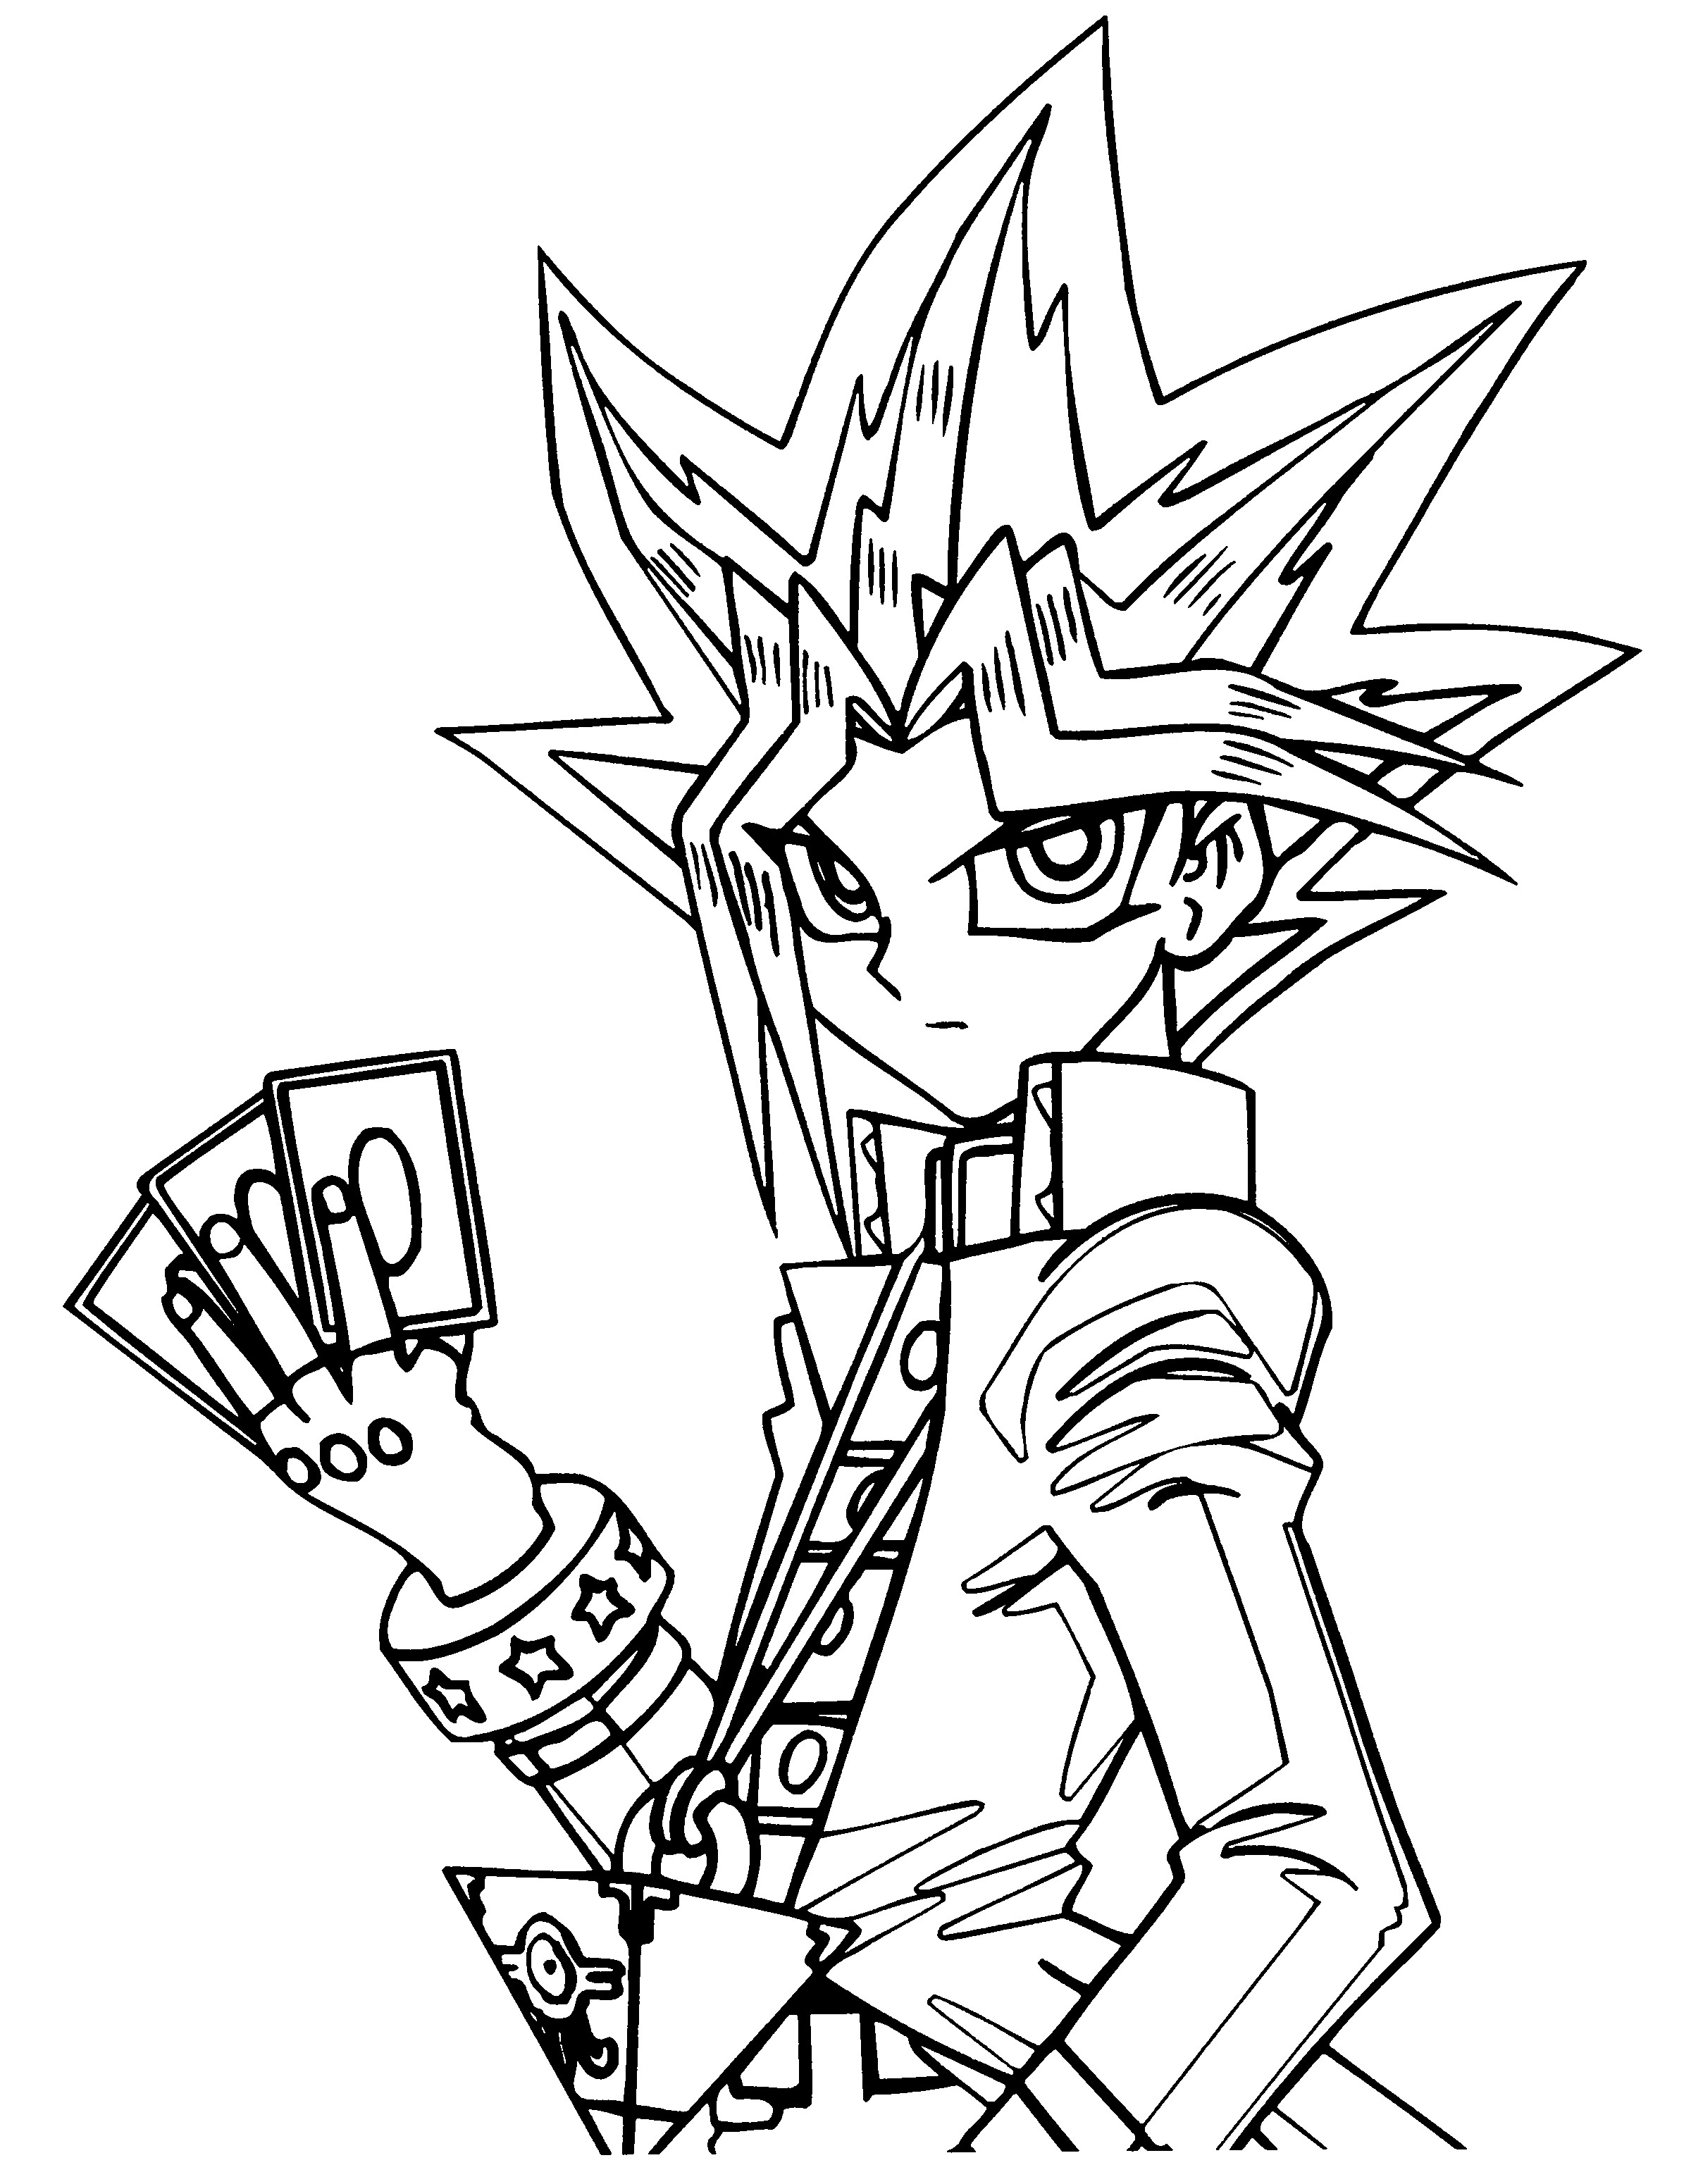 Printable Yugioh Coloring Pages Coloring Me Yu Gi Oh Coloring Pages